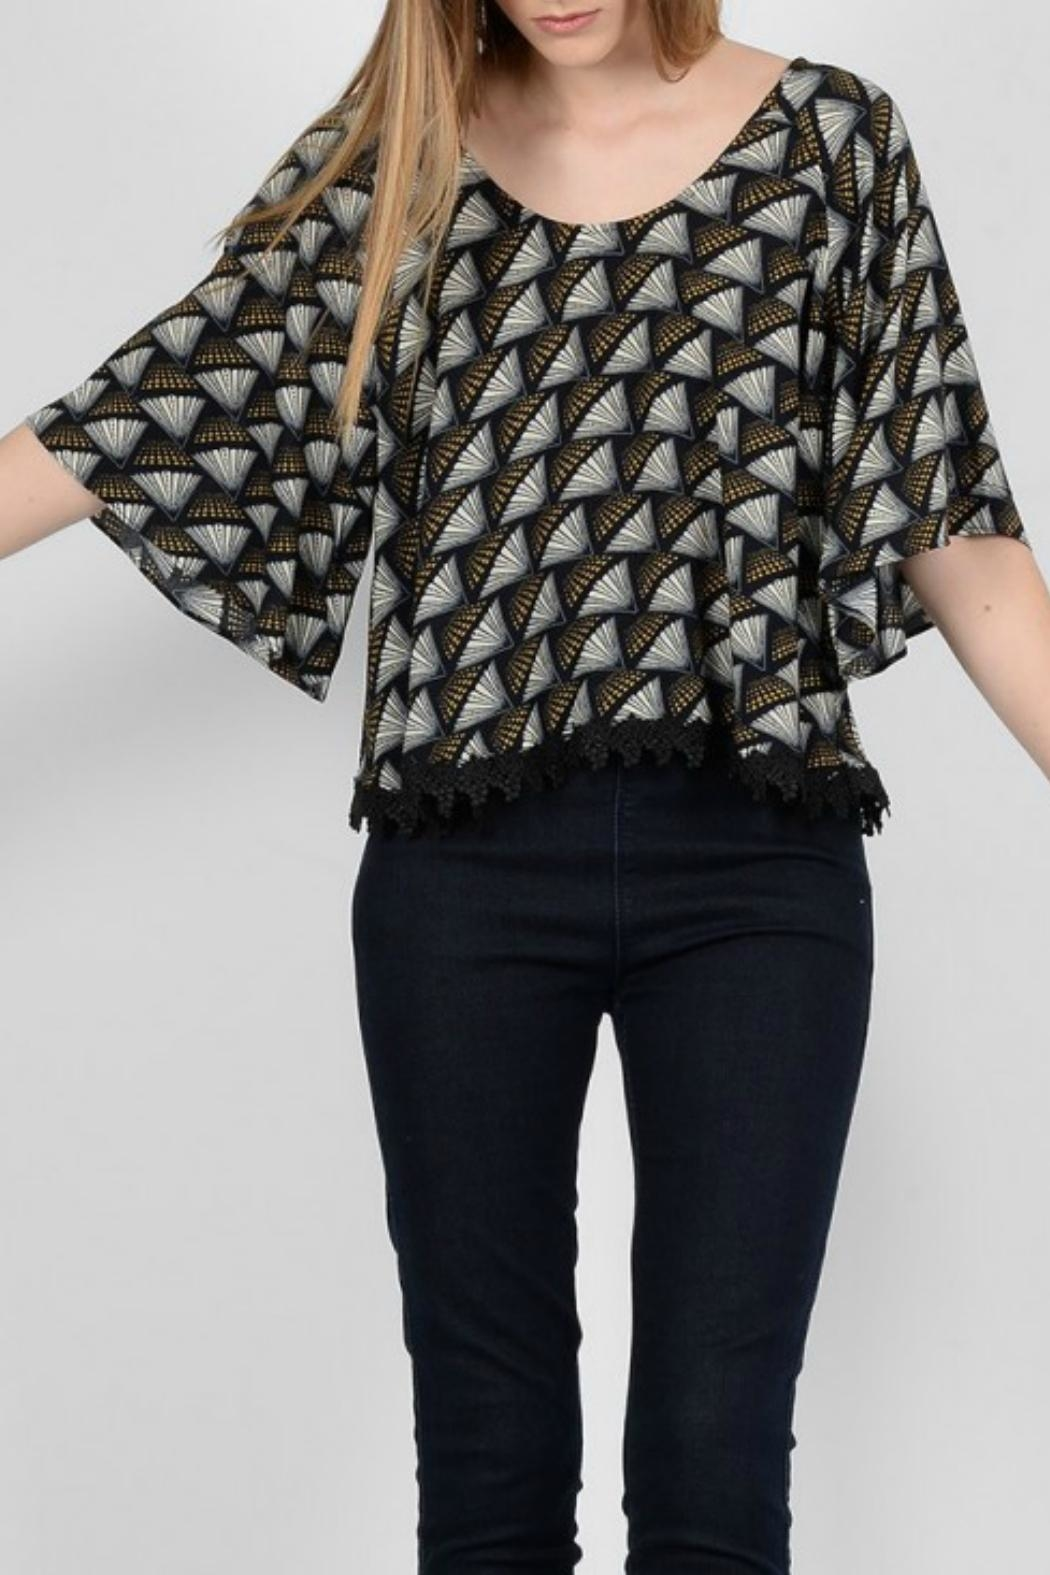 Molly Bracken Scoop Neck Blouse - Main Image